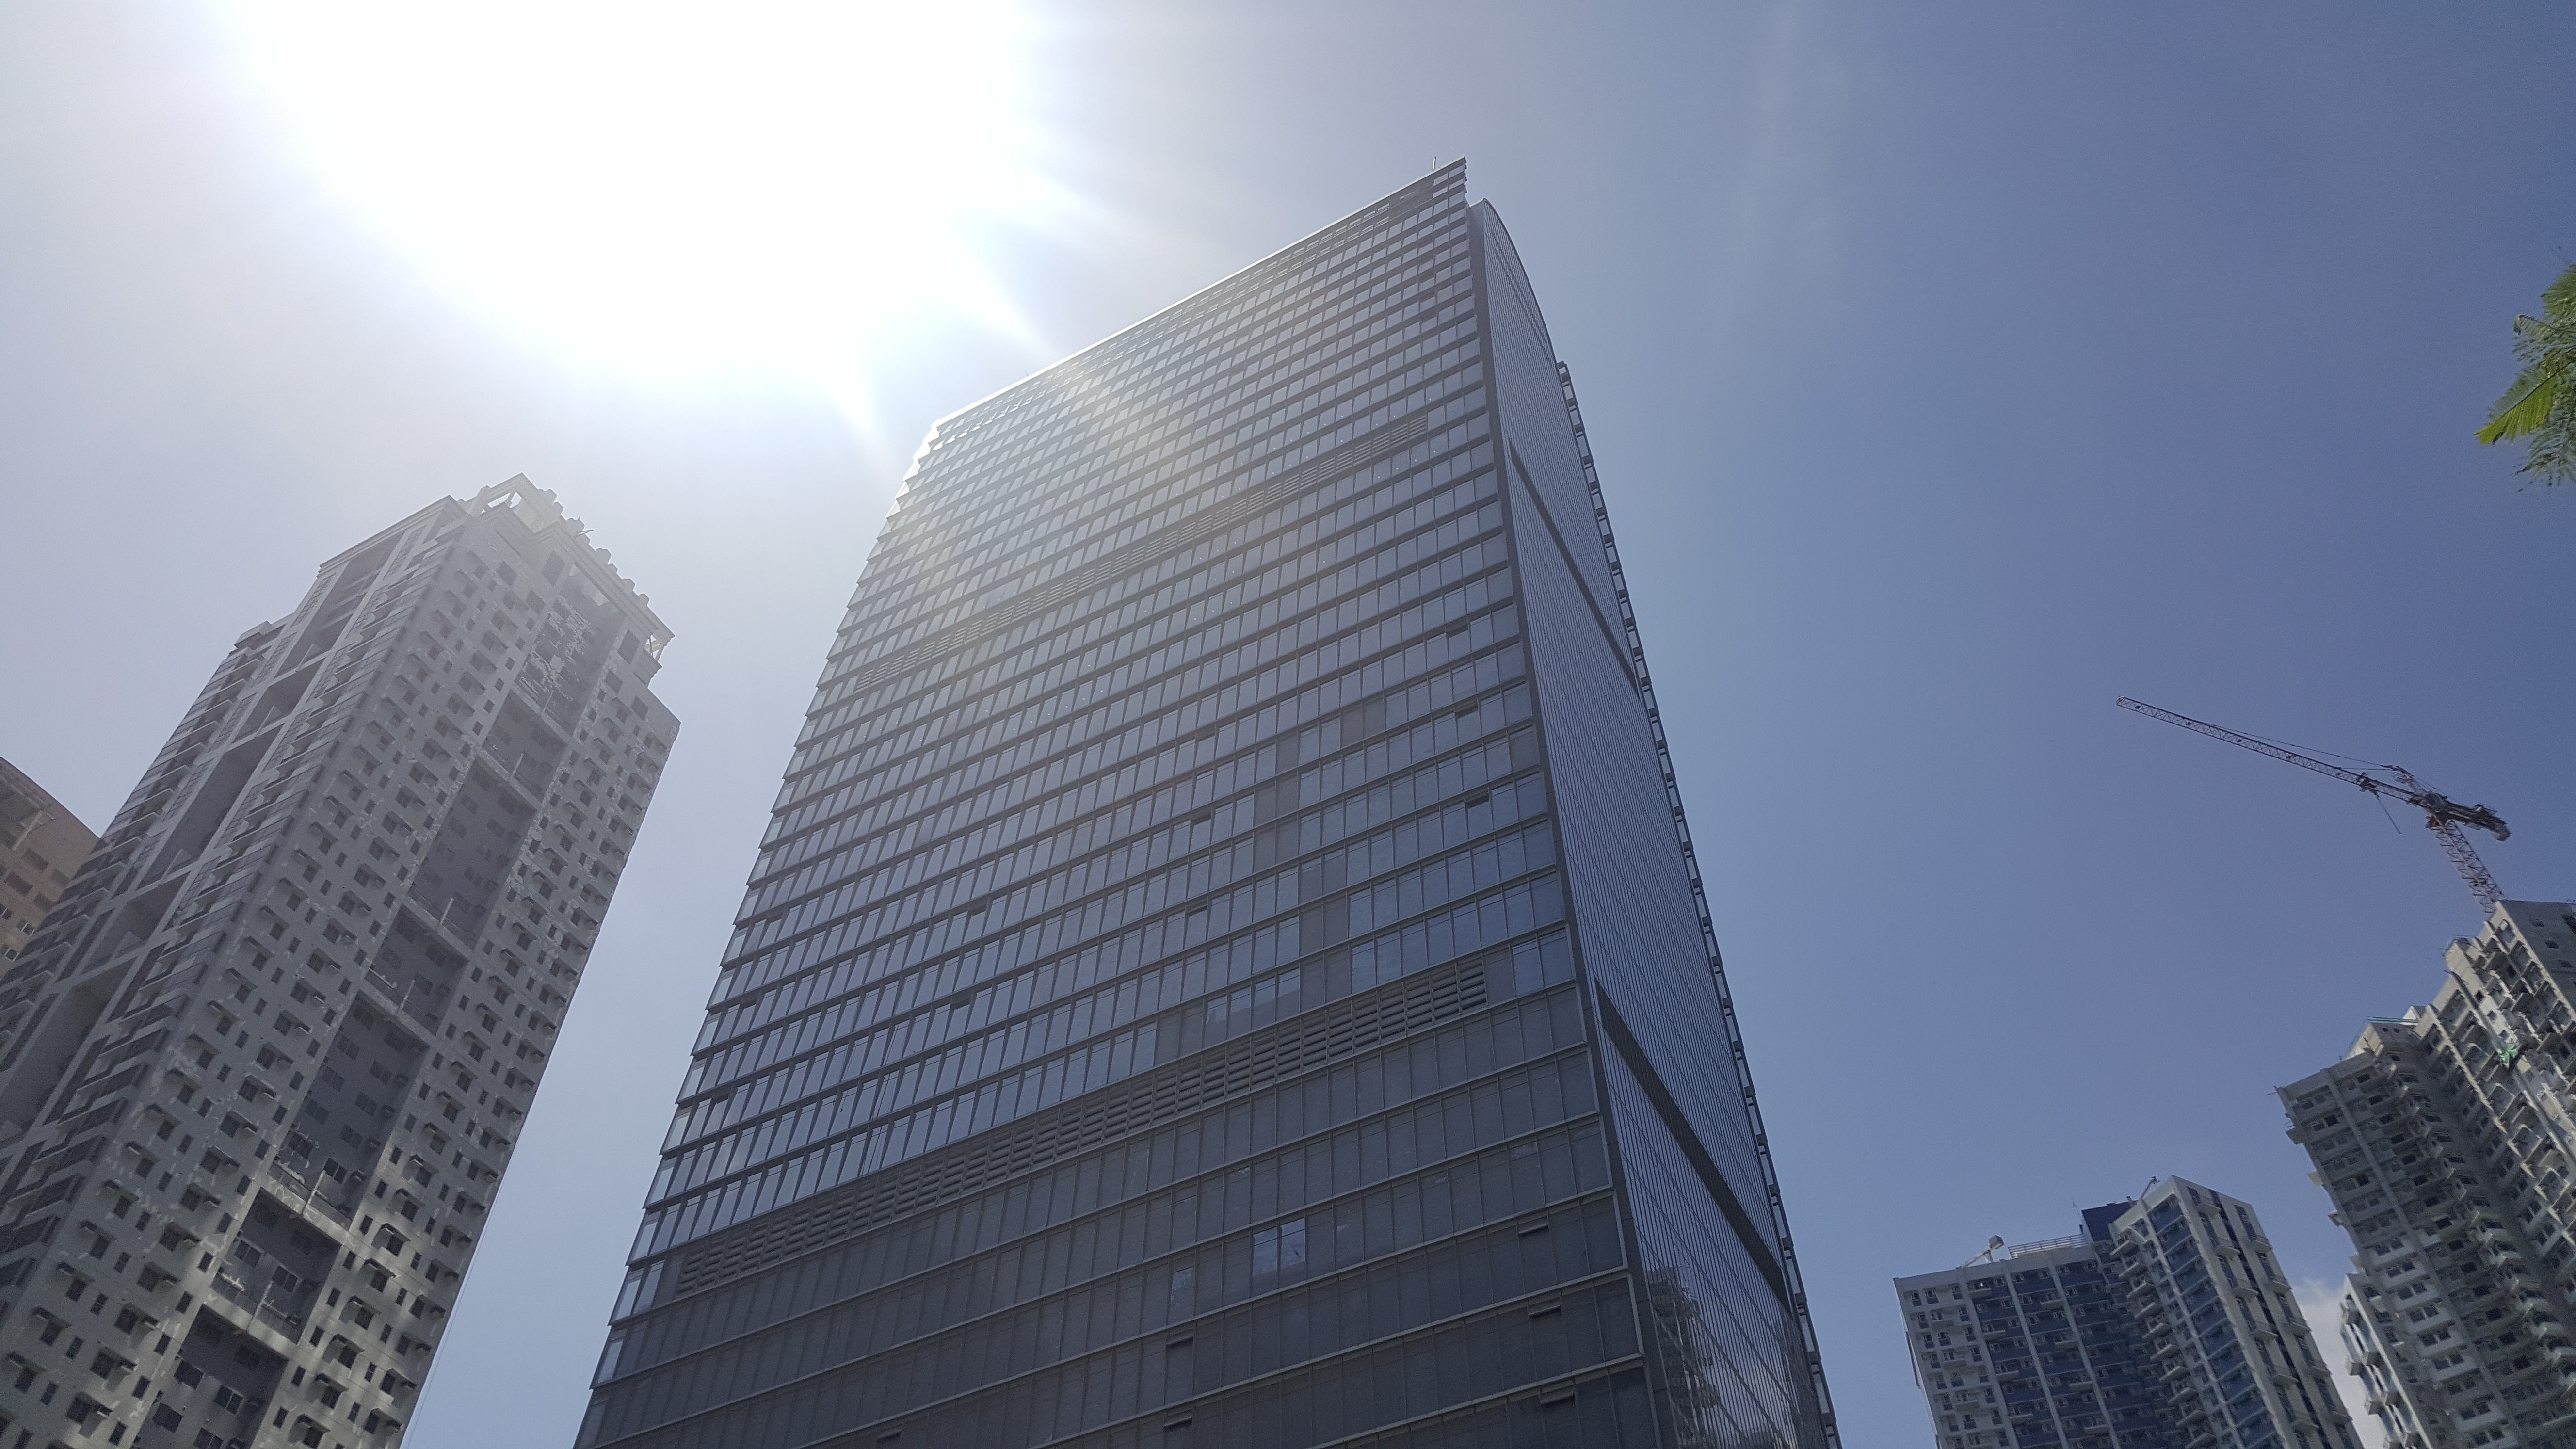 435 sqm Office Space For Rent at The Finance Centre in BGC, Taguig